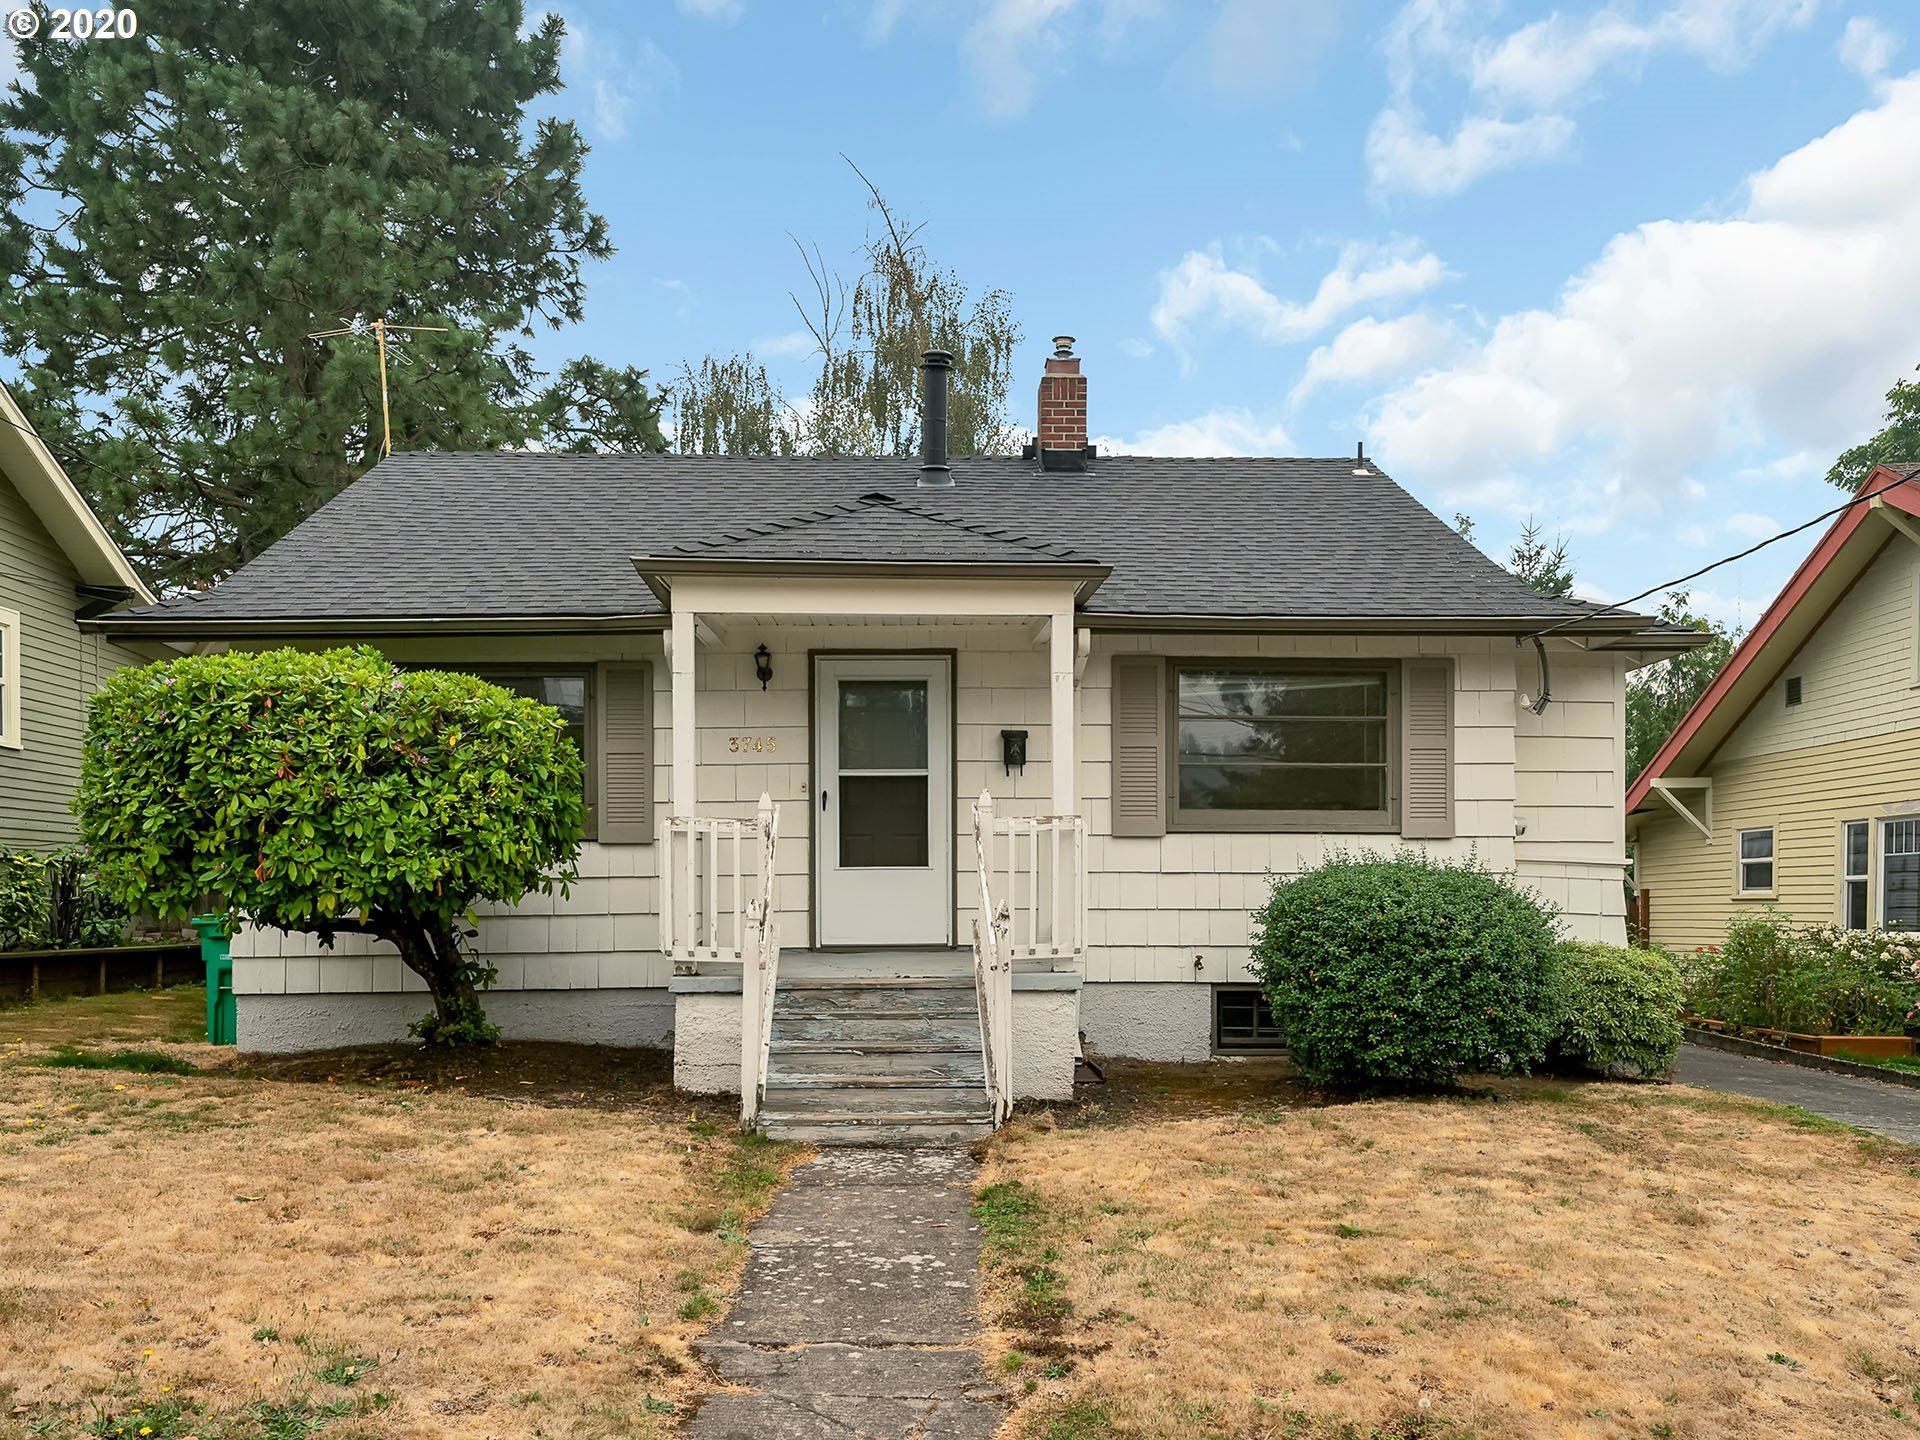 3745 NE 80TH AVE, Portland, OR 97213 - MLS#: 20225489